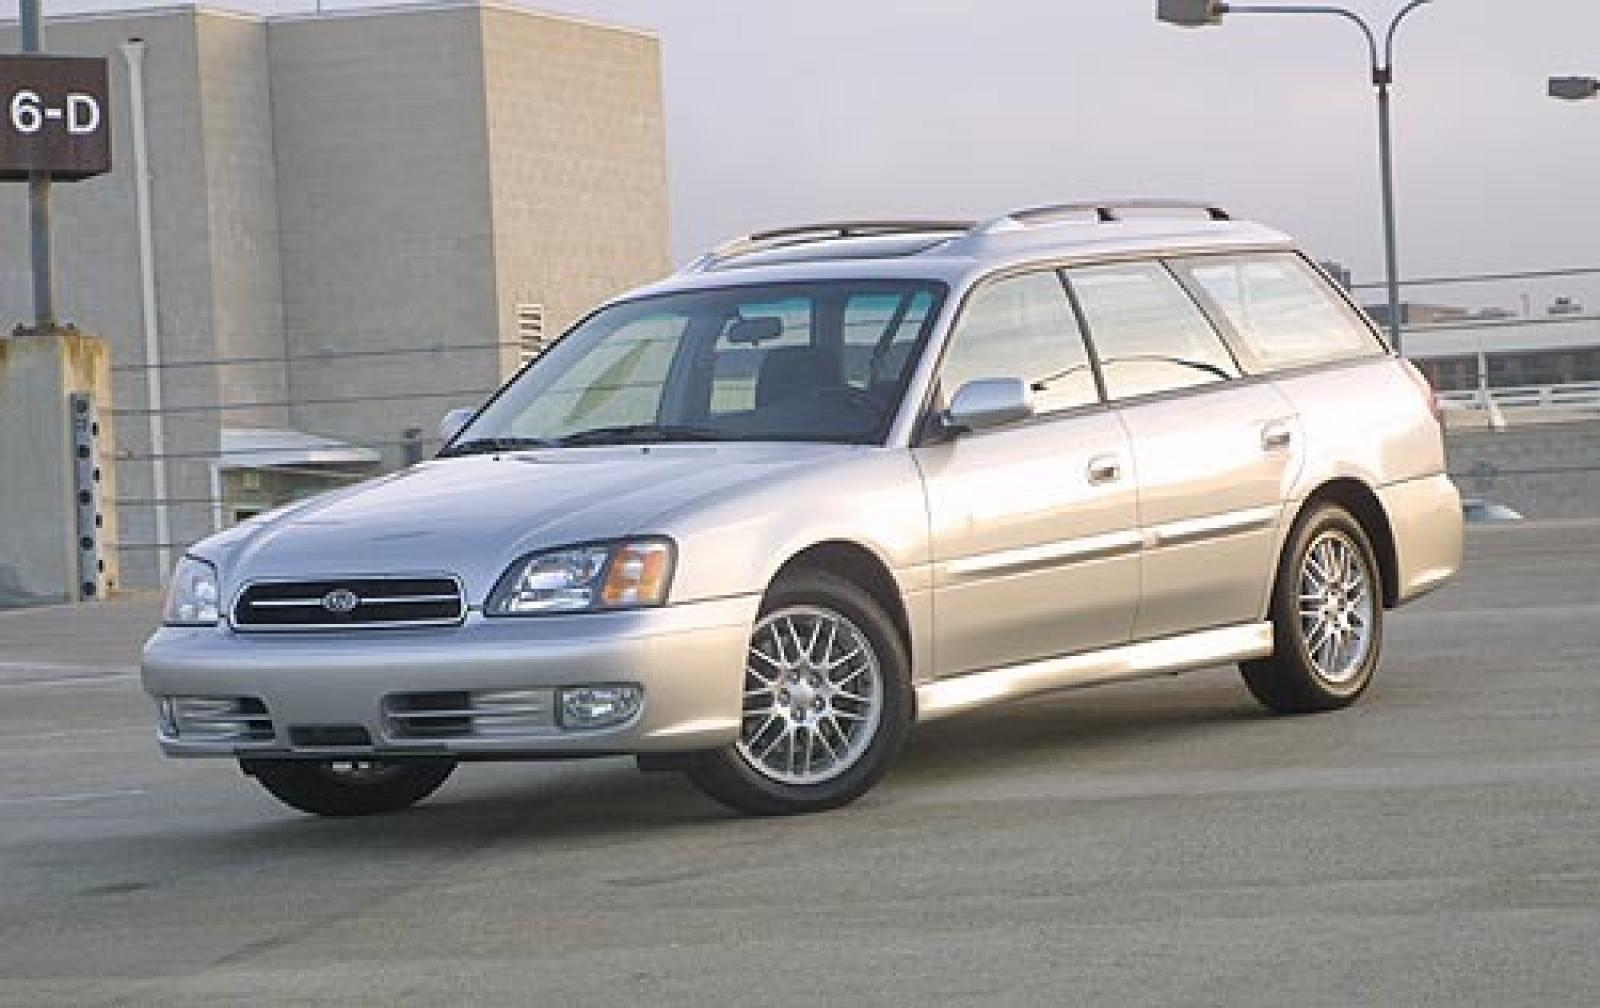 2004 subaru legacy information and photos zombiedrive 2004 subaru legacy 1 800 1024 1280 1600 origin vanachro Images